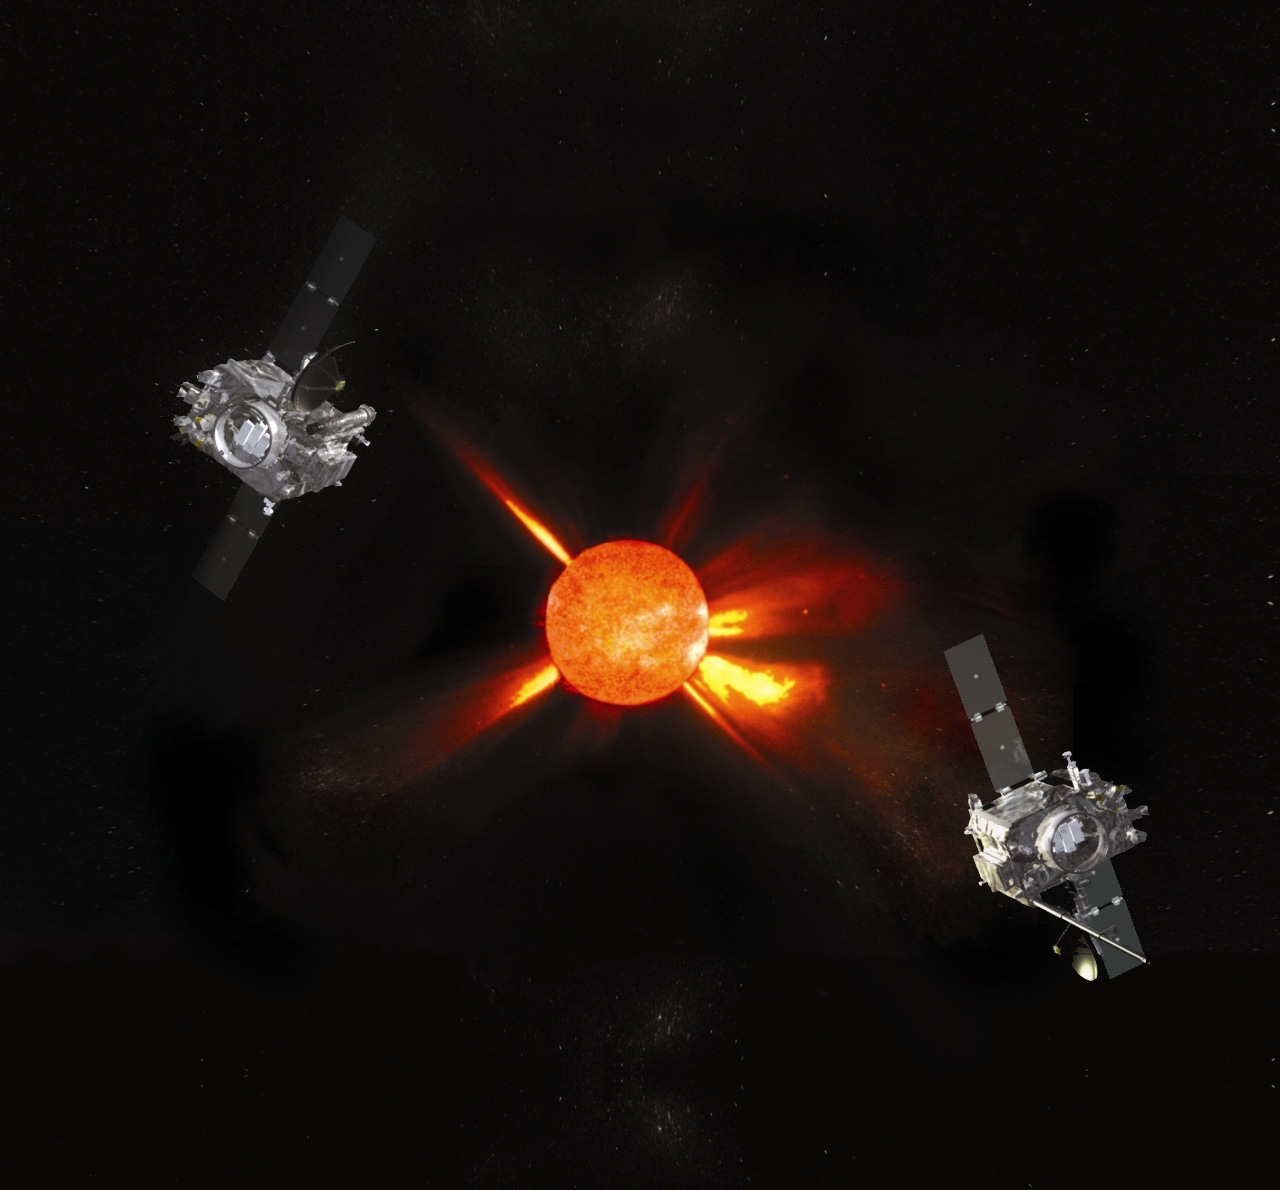 An analysis of the sun in astronomy